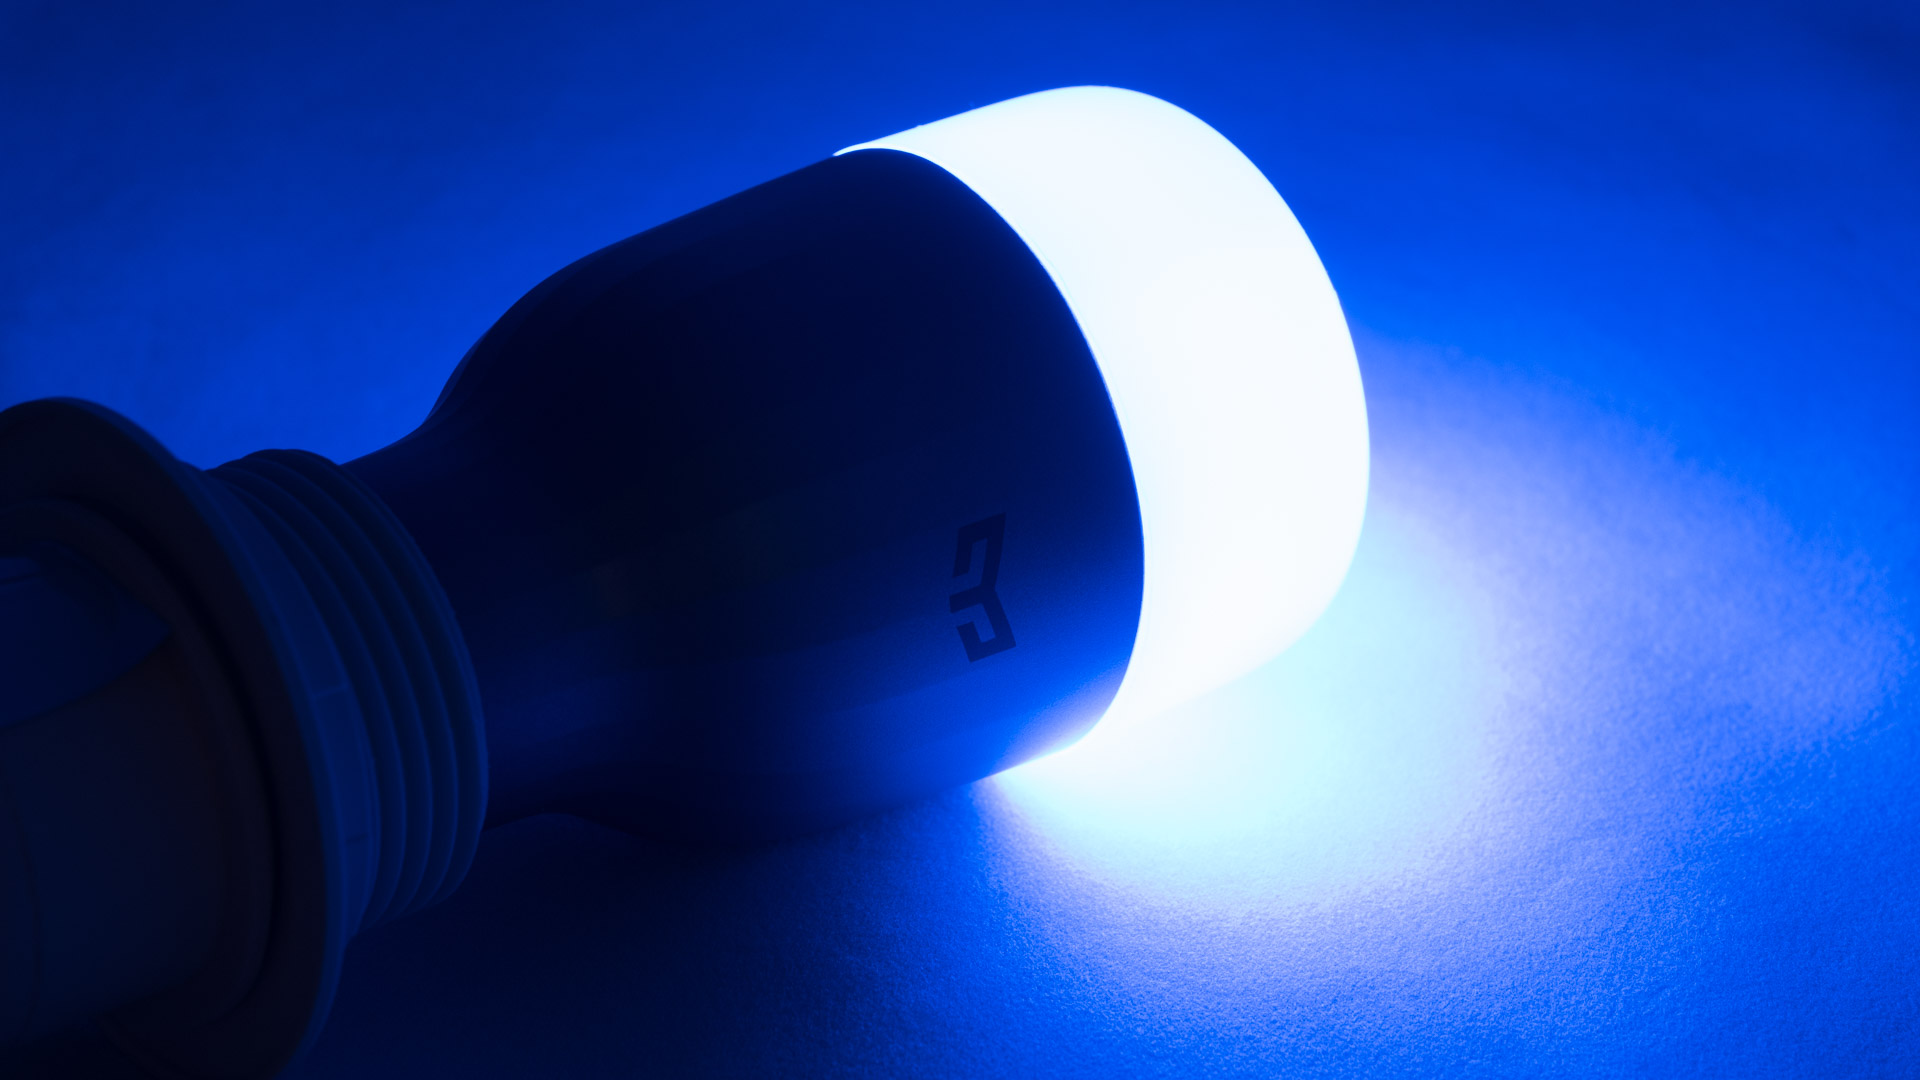 Die günstige Alternative zu Philips HUE, die Xiaomi Yeelight RGB ...